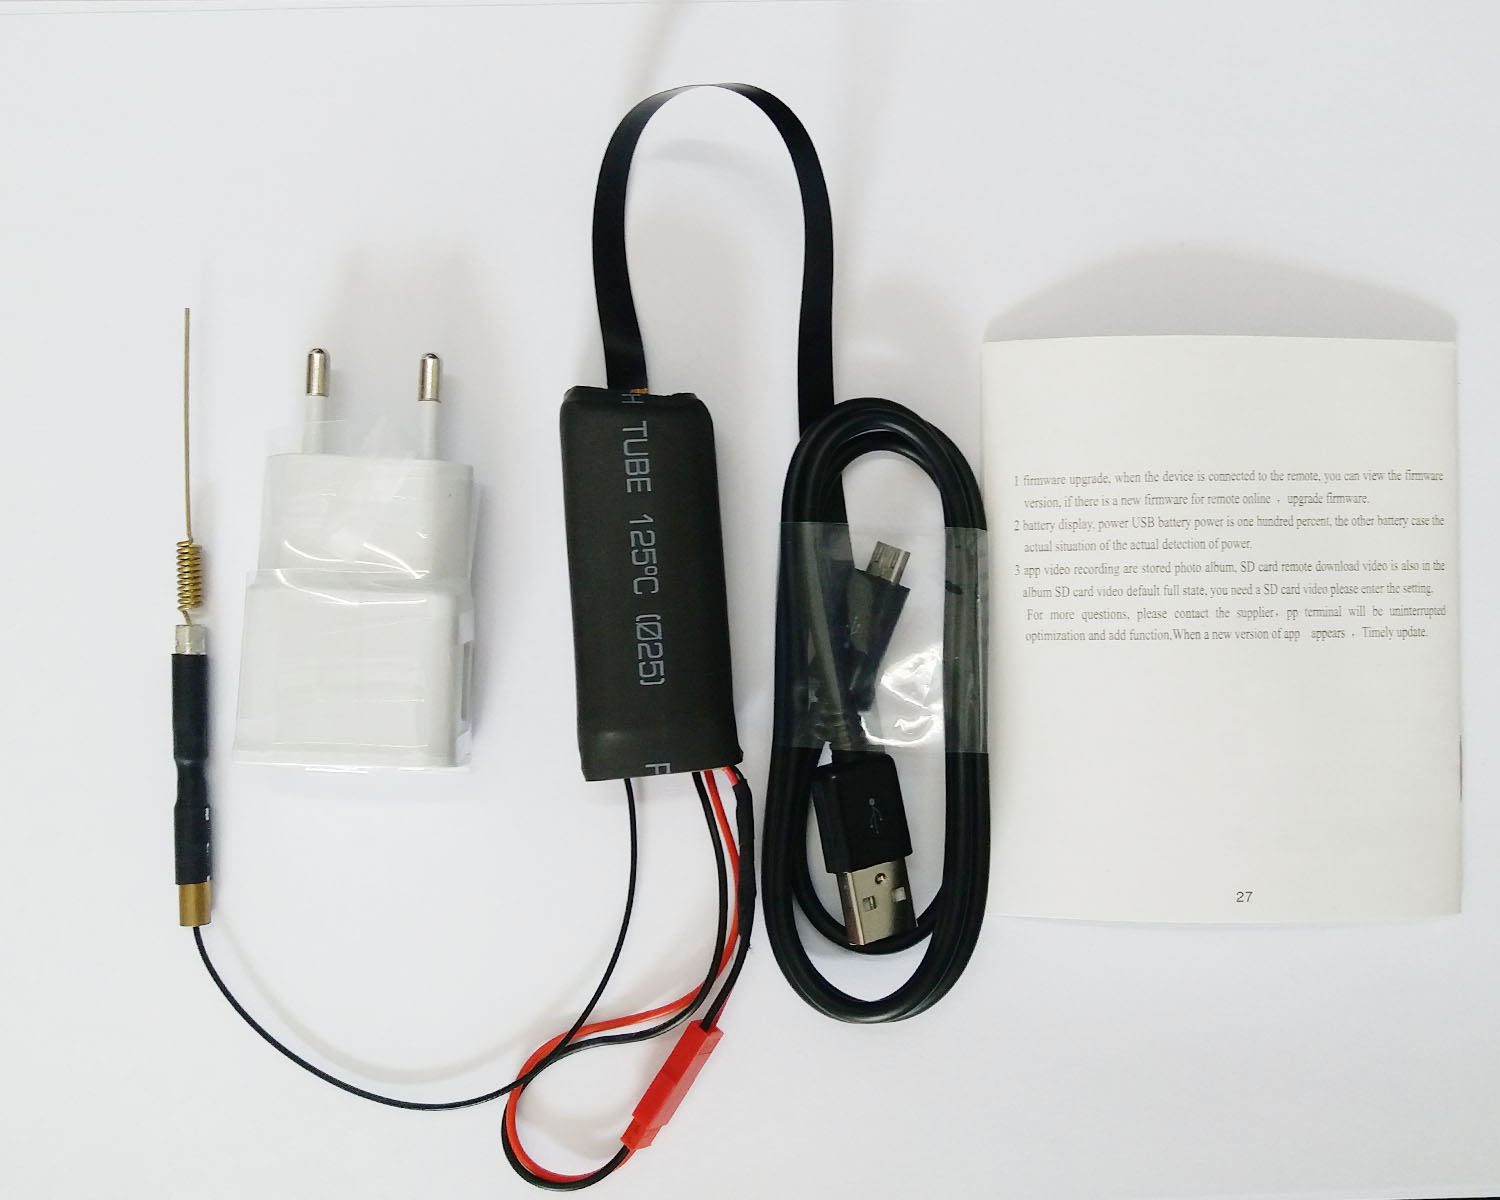 S06S WIFI Module Full Set CCTV Accesories 90 Degree Built In Battery 1800mah